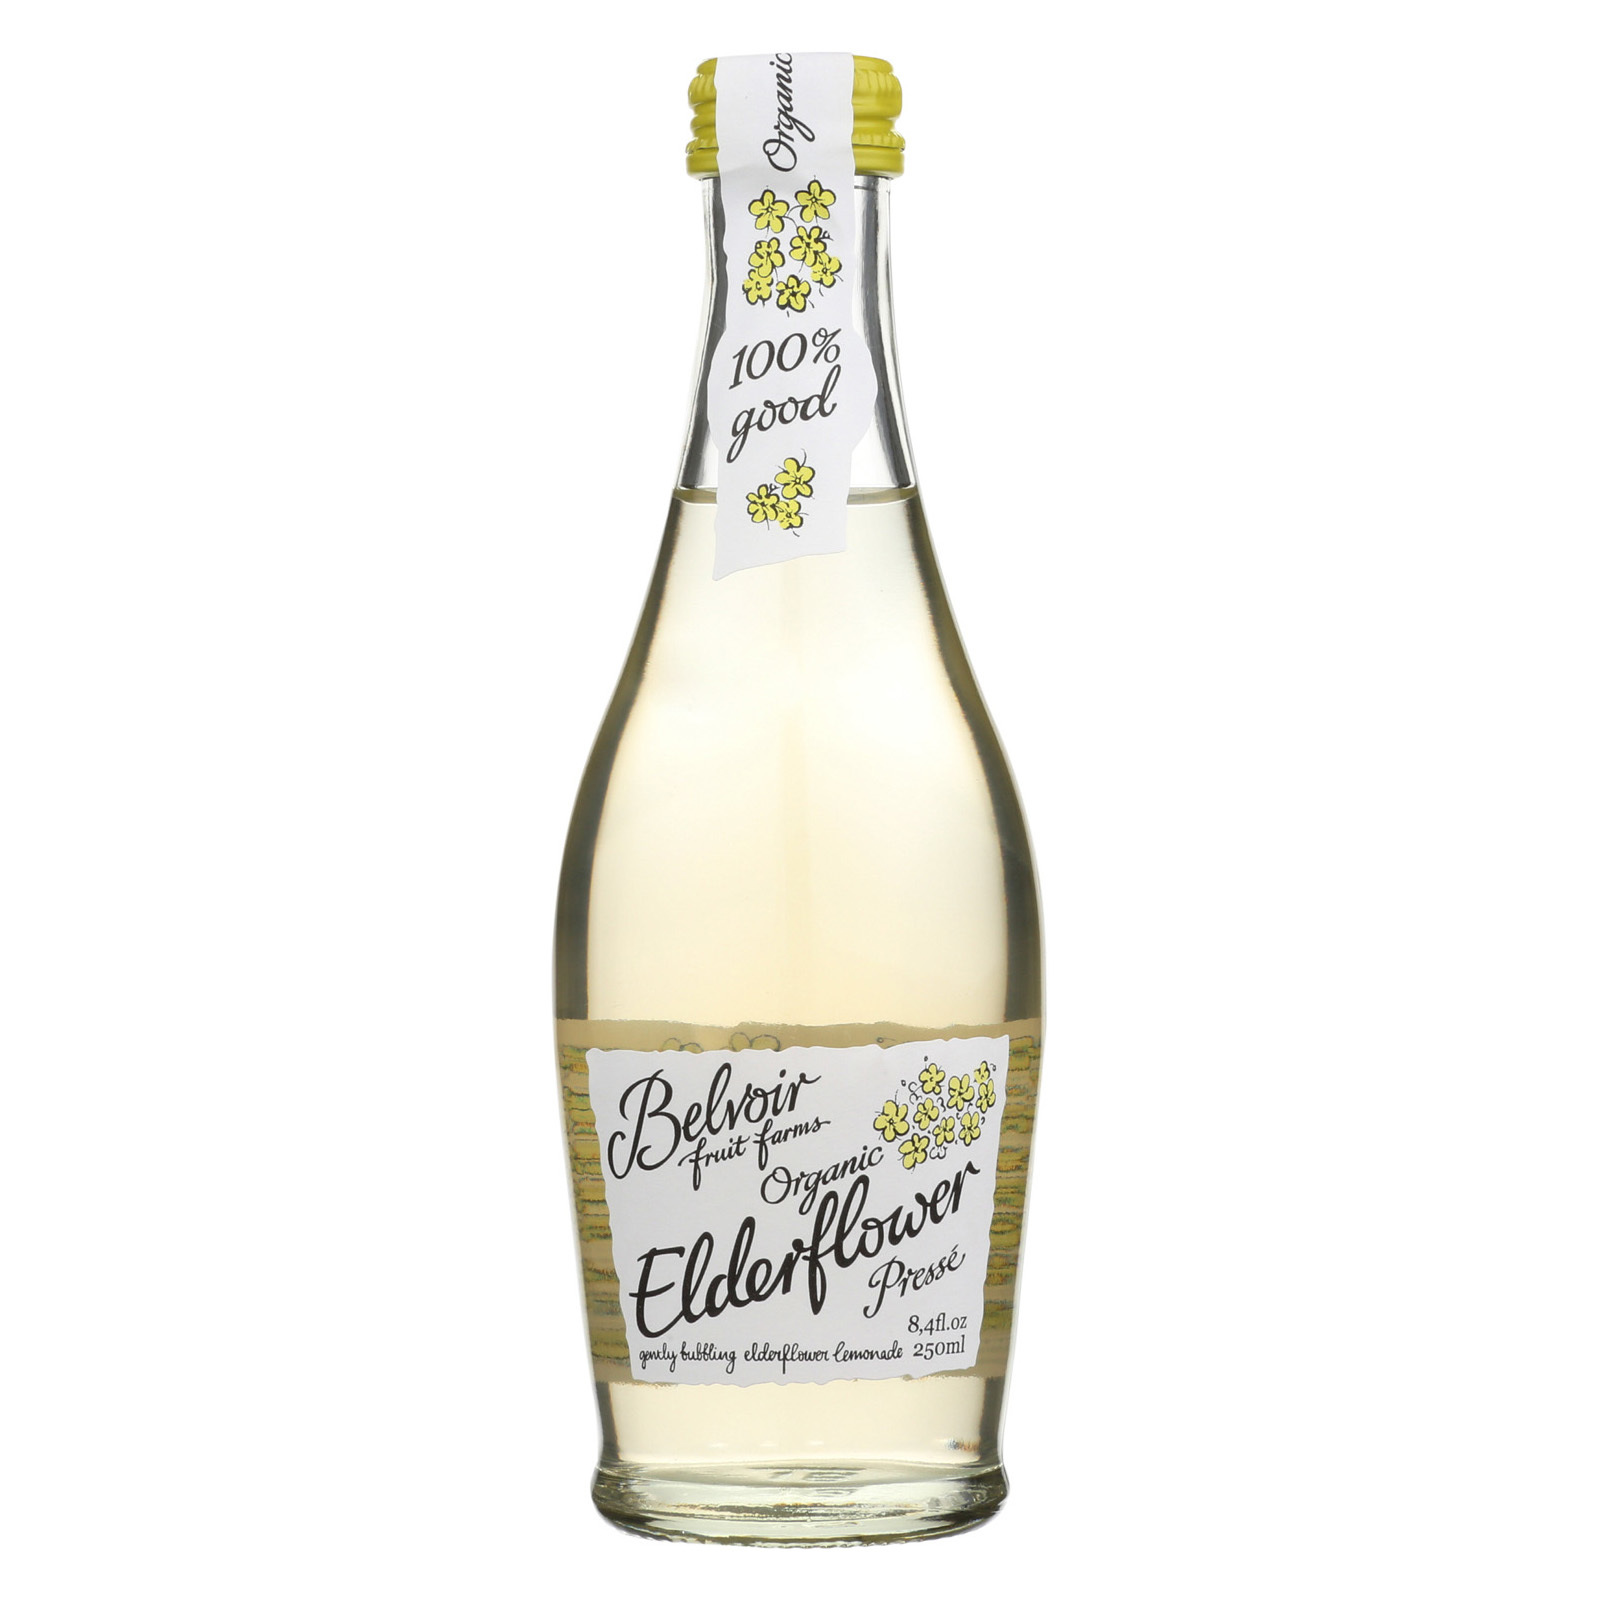 Belvoir Beverage - Organic - Elderflower - Presse - Case of 24 - 8.45 fl oz